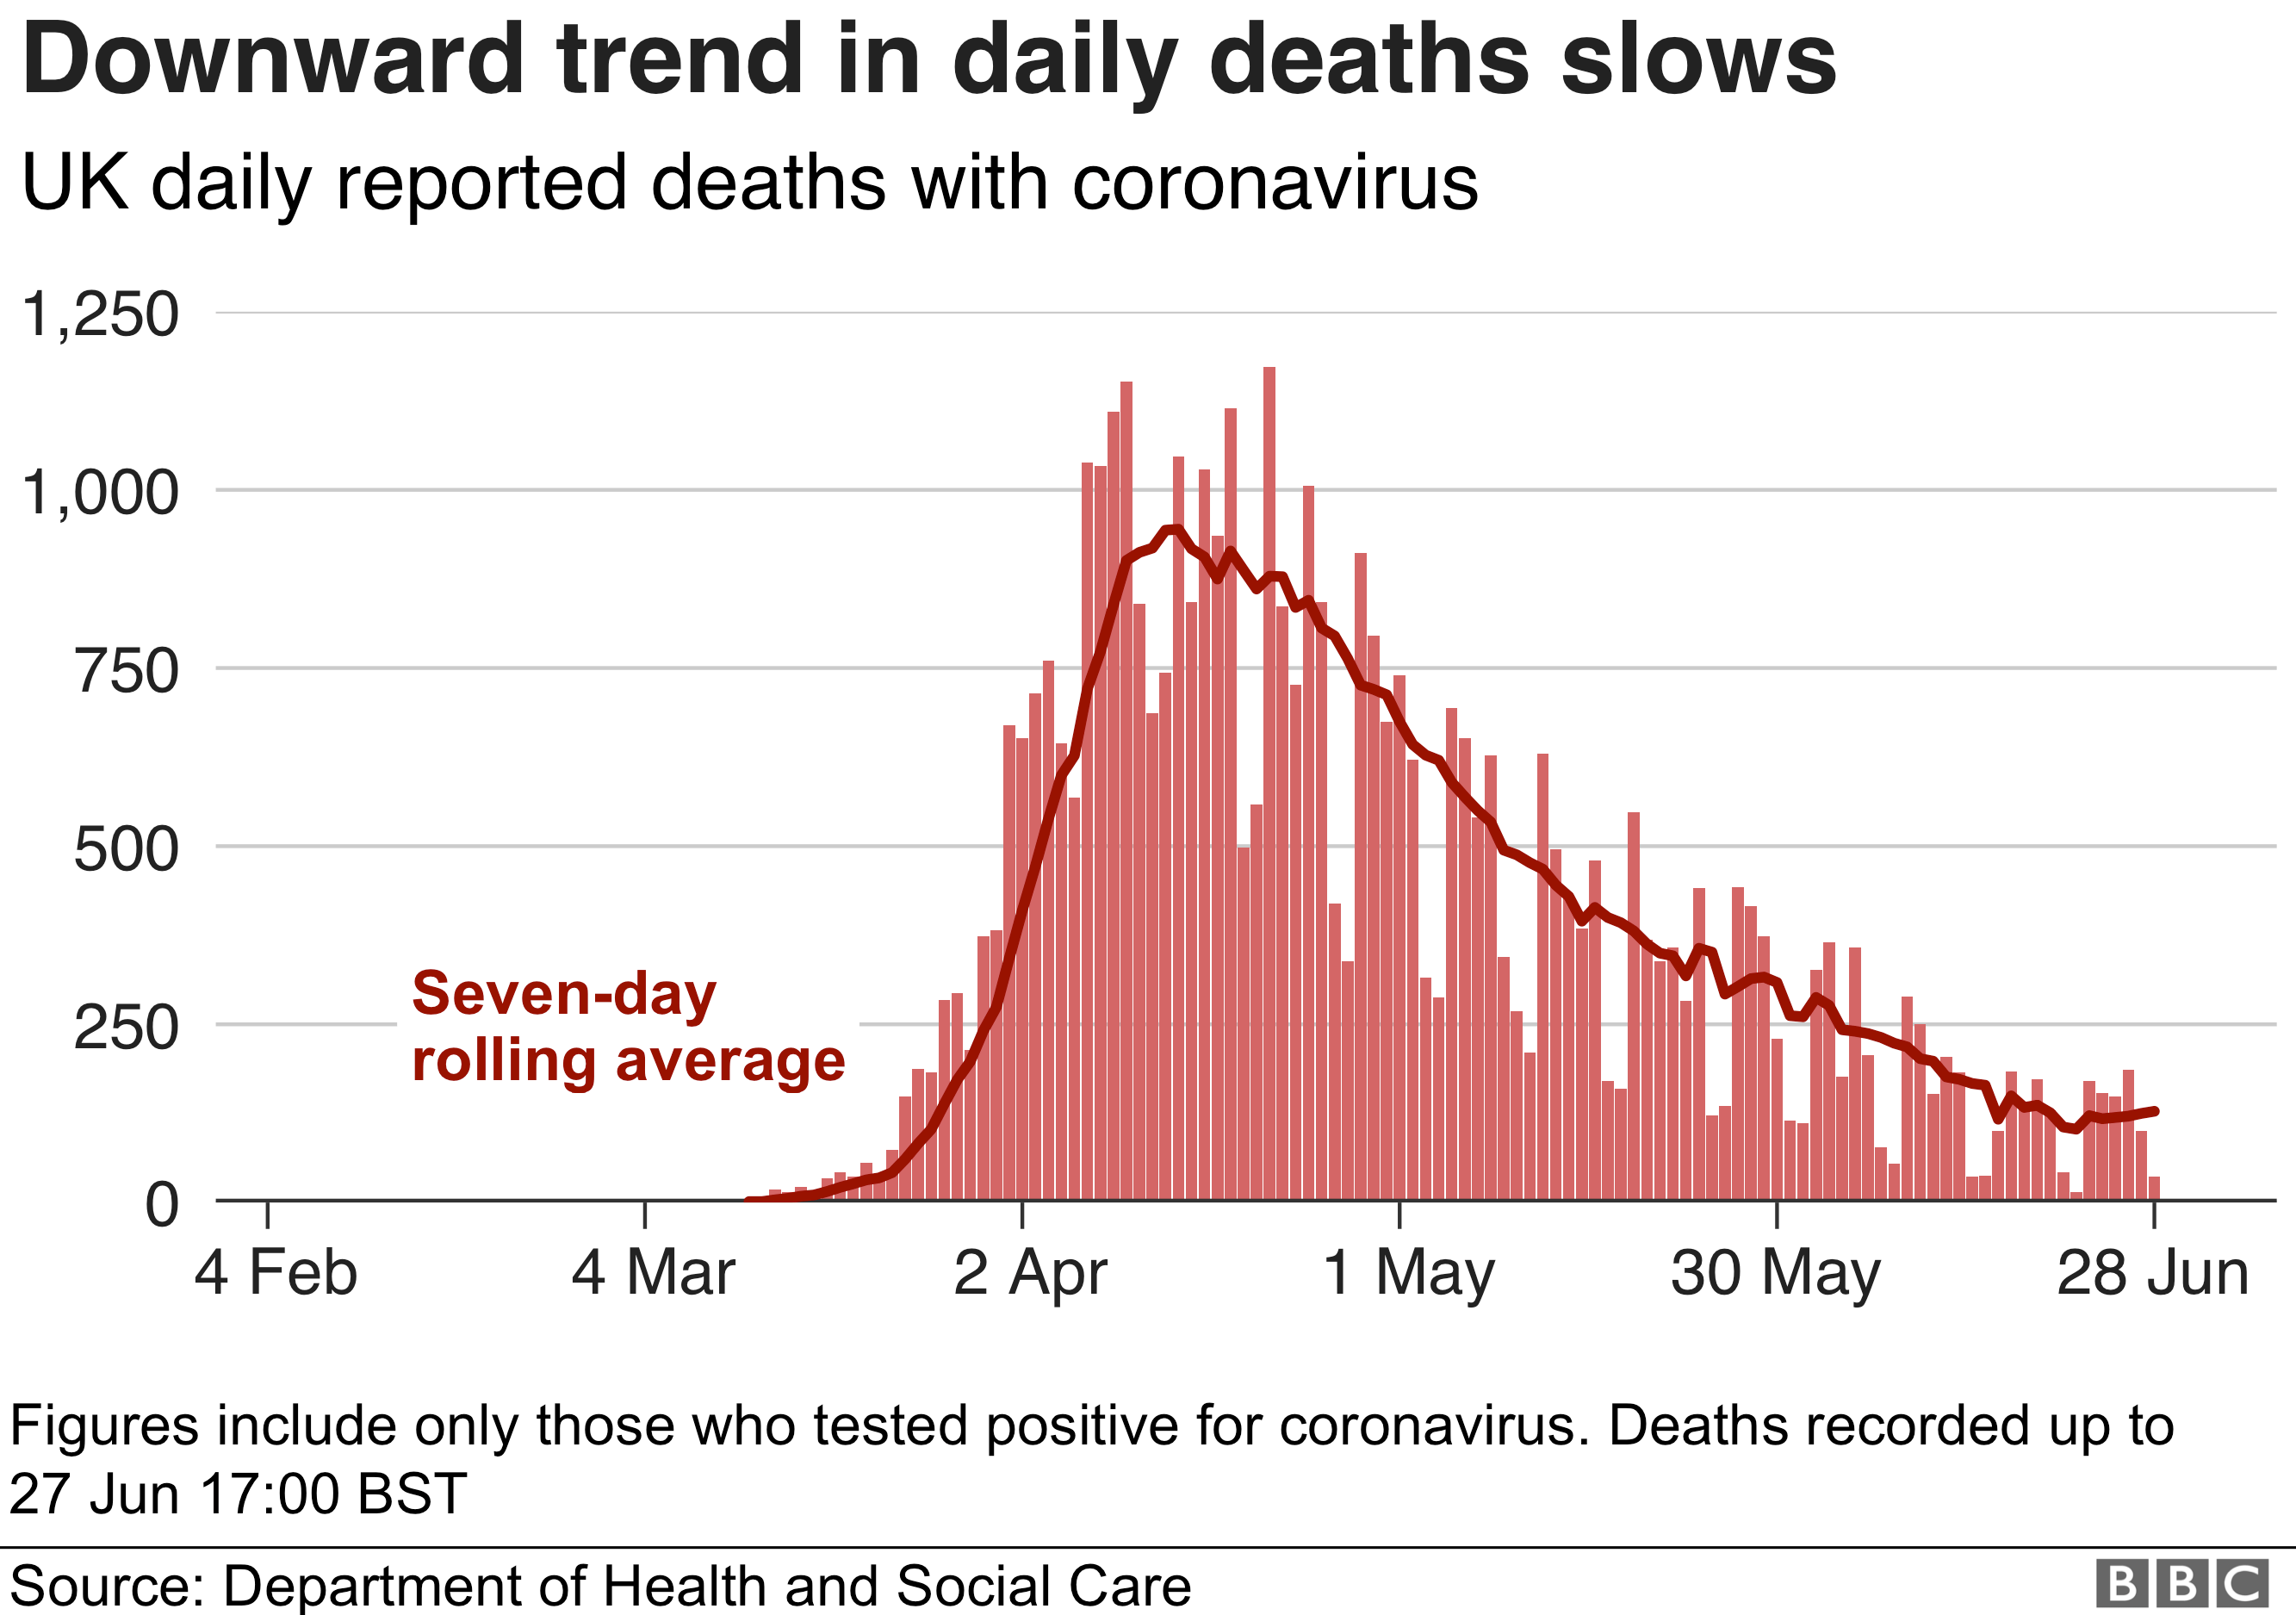 Chart showing daily death toll and rolling 7-day average, 28 June